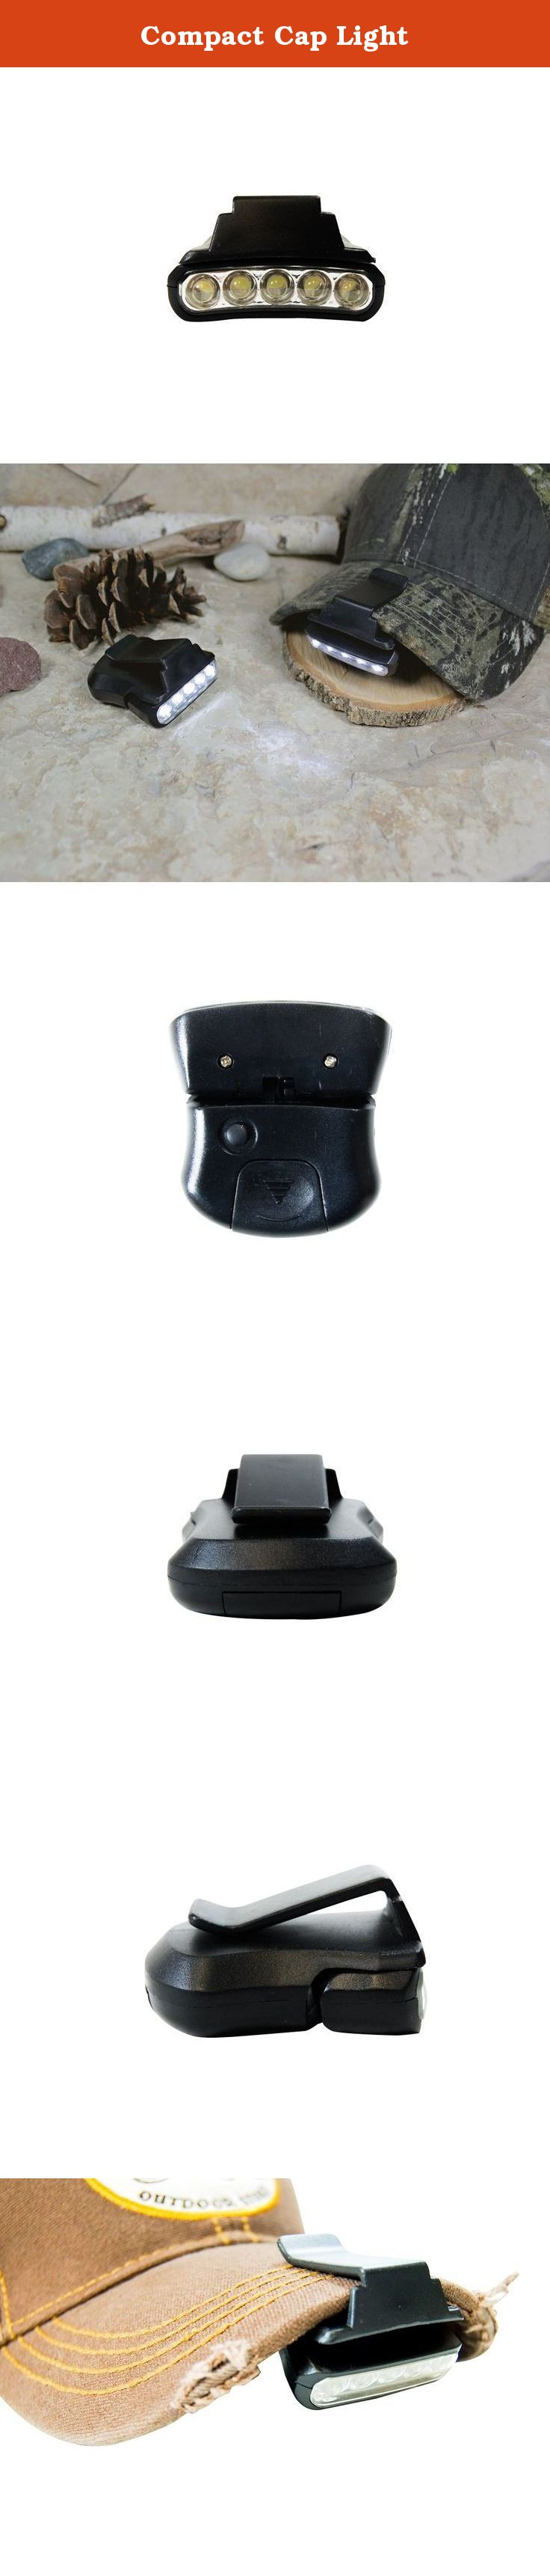 Compact Cap Light. Illuminate your way with this hands